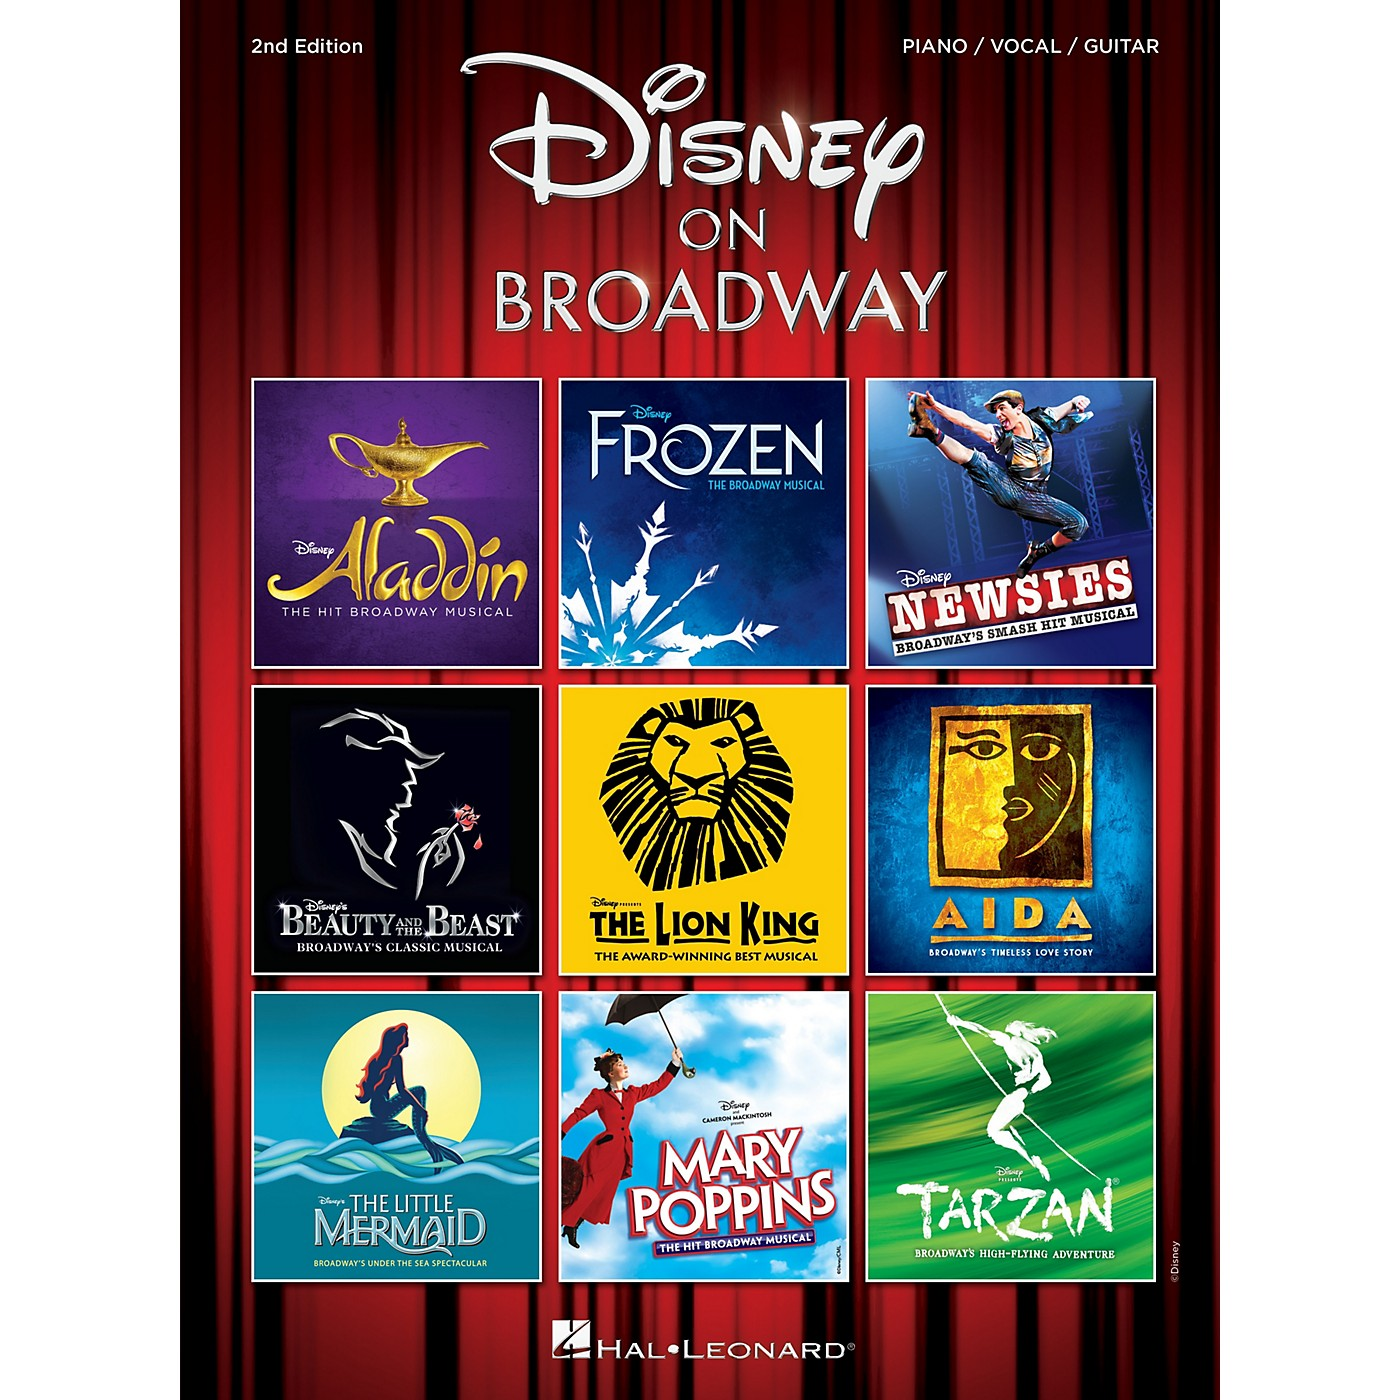 Hal Leonard Disney on Broadway - 2nd Edition Piano/Vocal/Guitar Songbook thumbnail